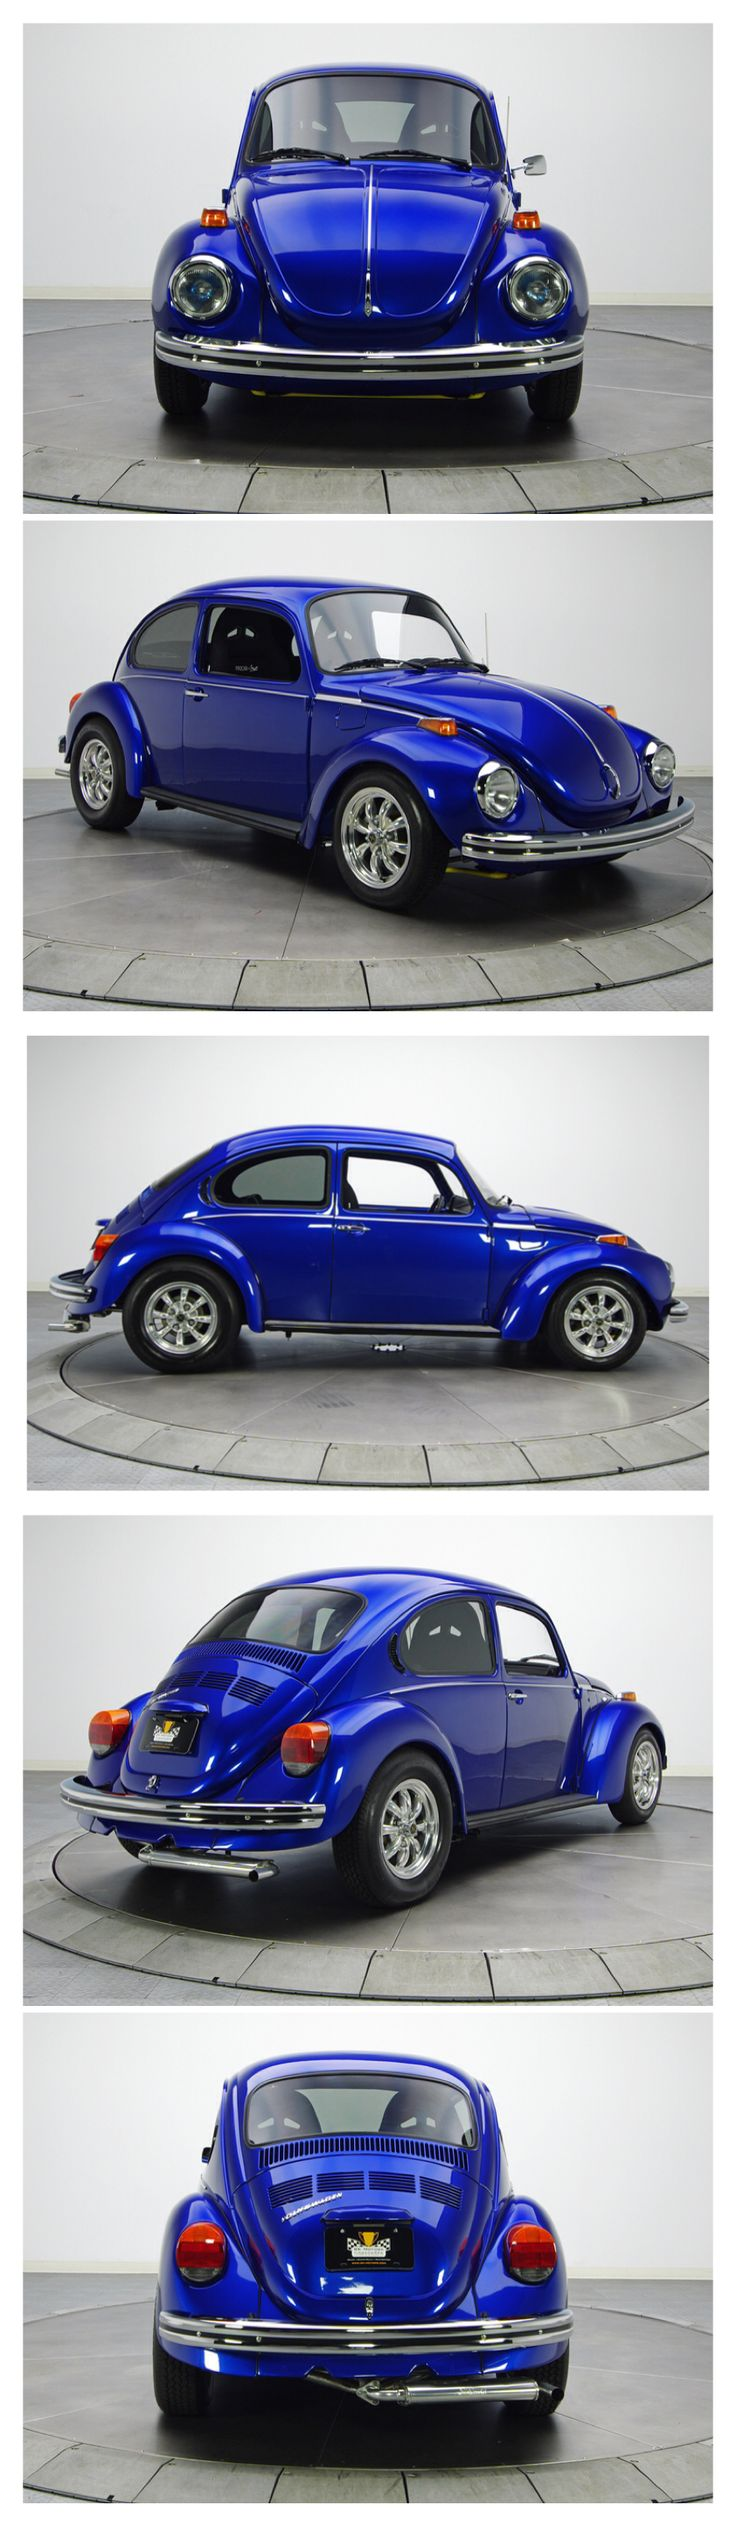 1973 VW Beetle...Re-pin brought to you by agents at #HouseofInsurance #Eugene, Oregon for #carinsurance.